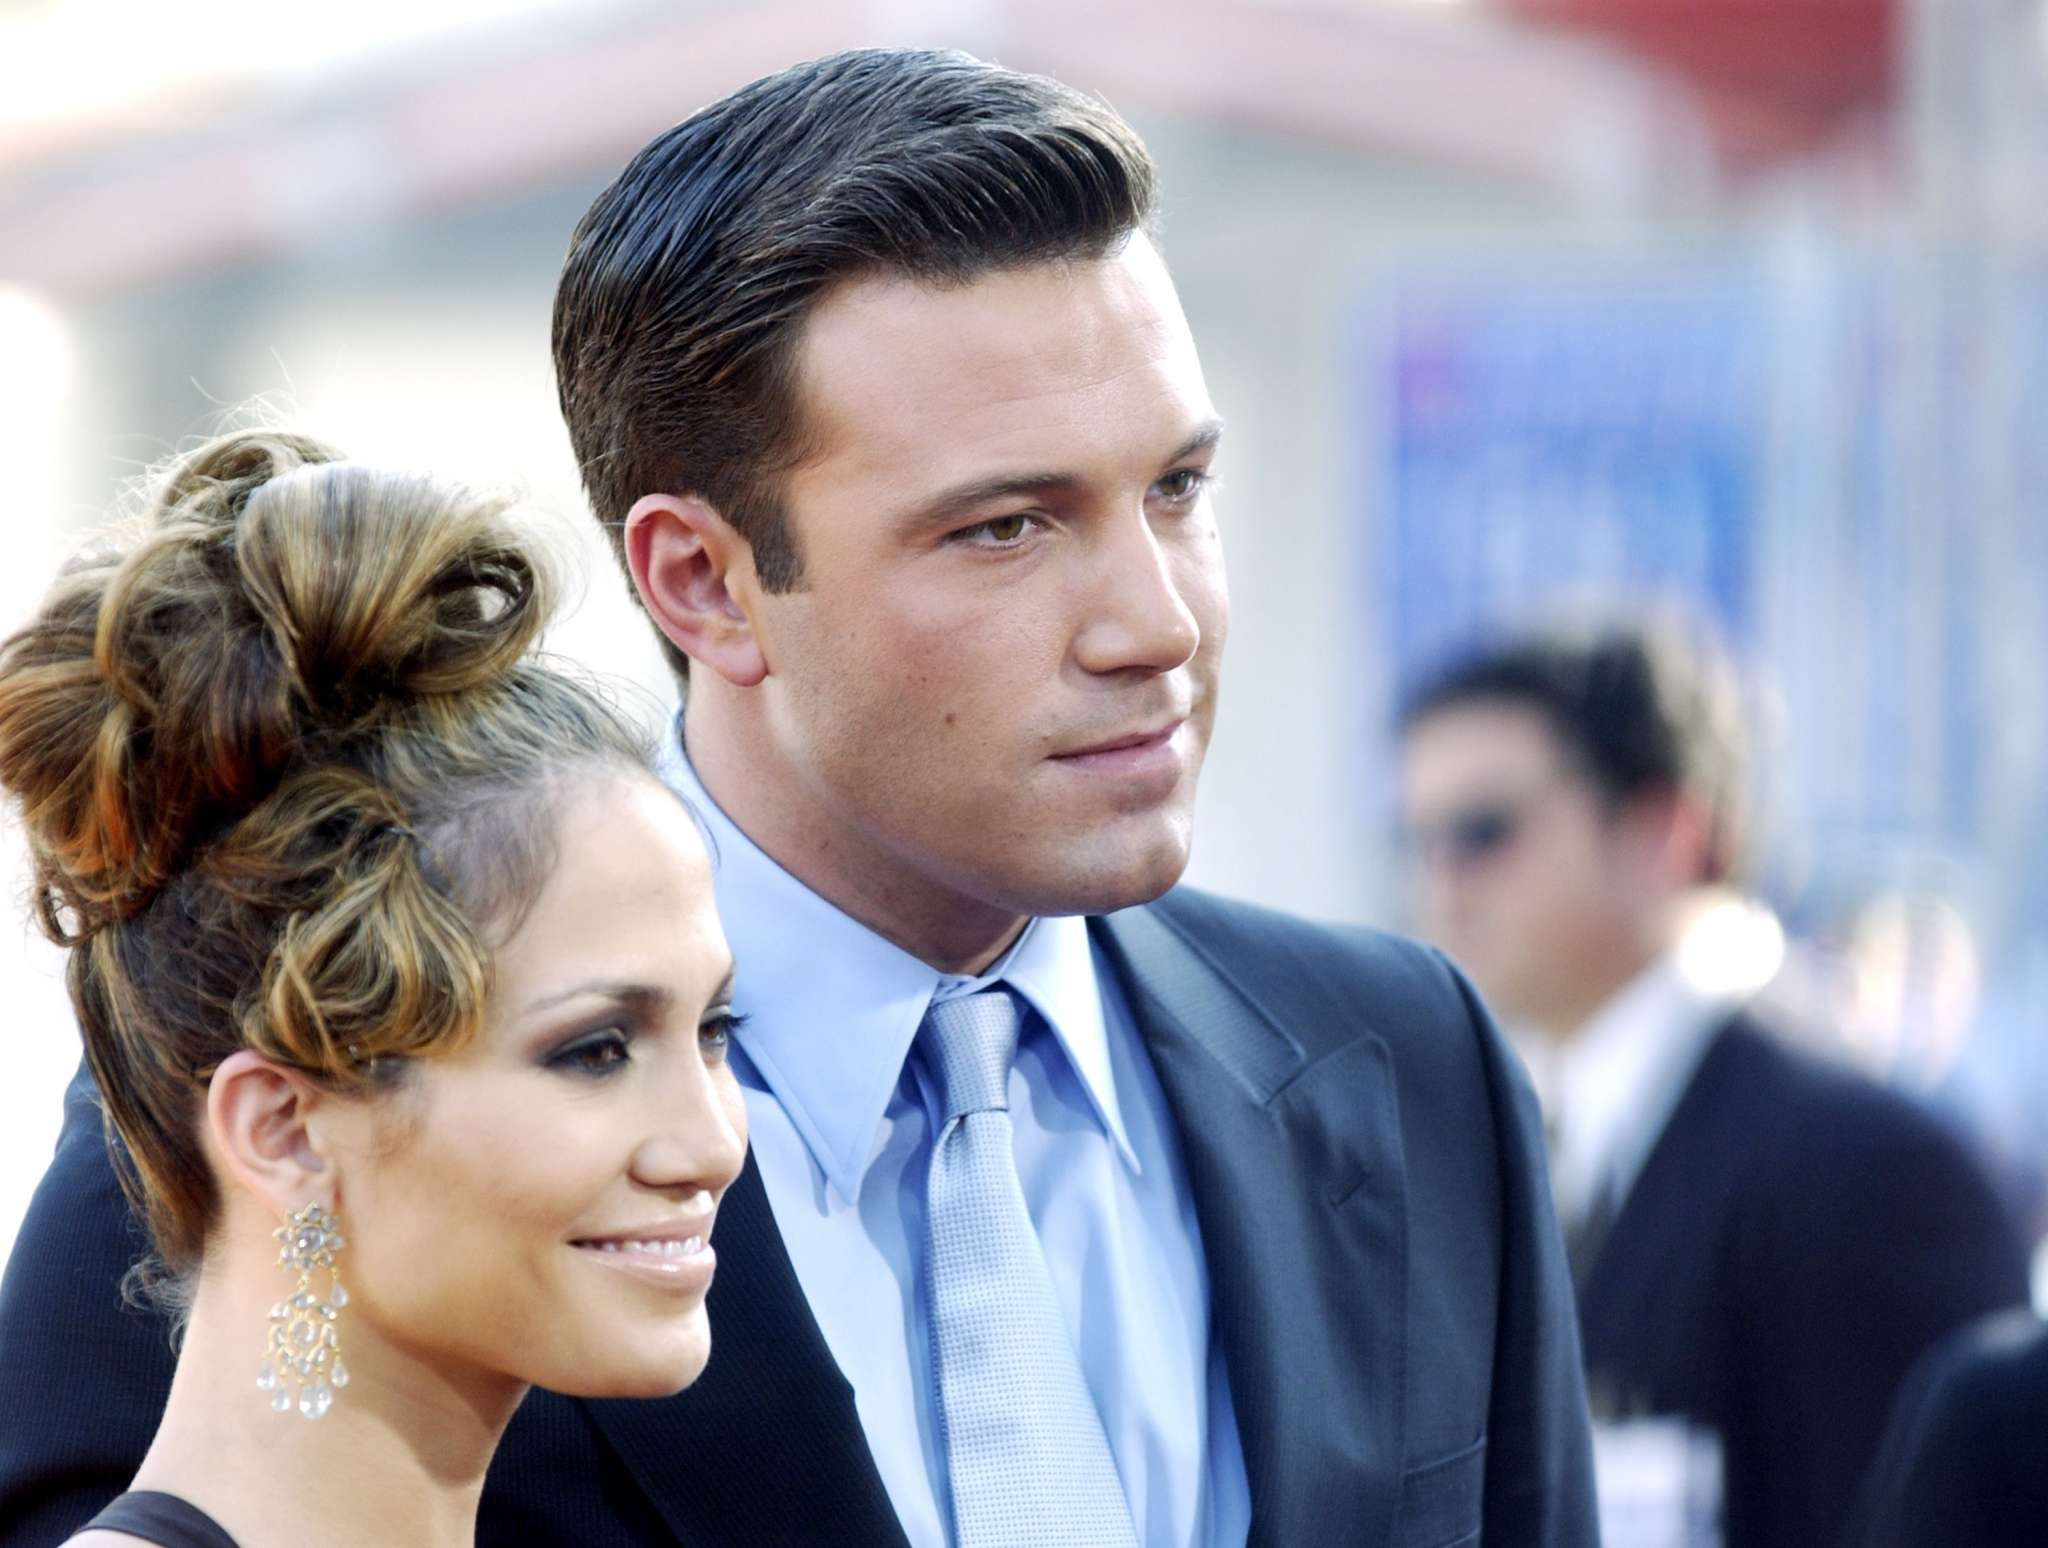 Jennifer Lopez And Ben Affleck Spending More And More Time